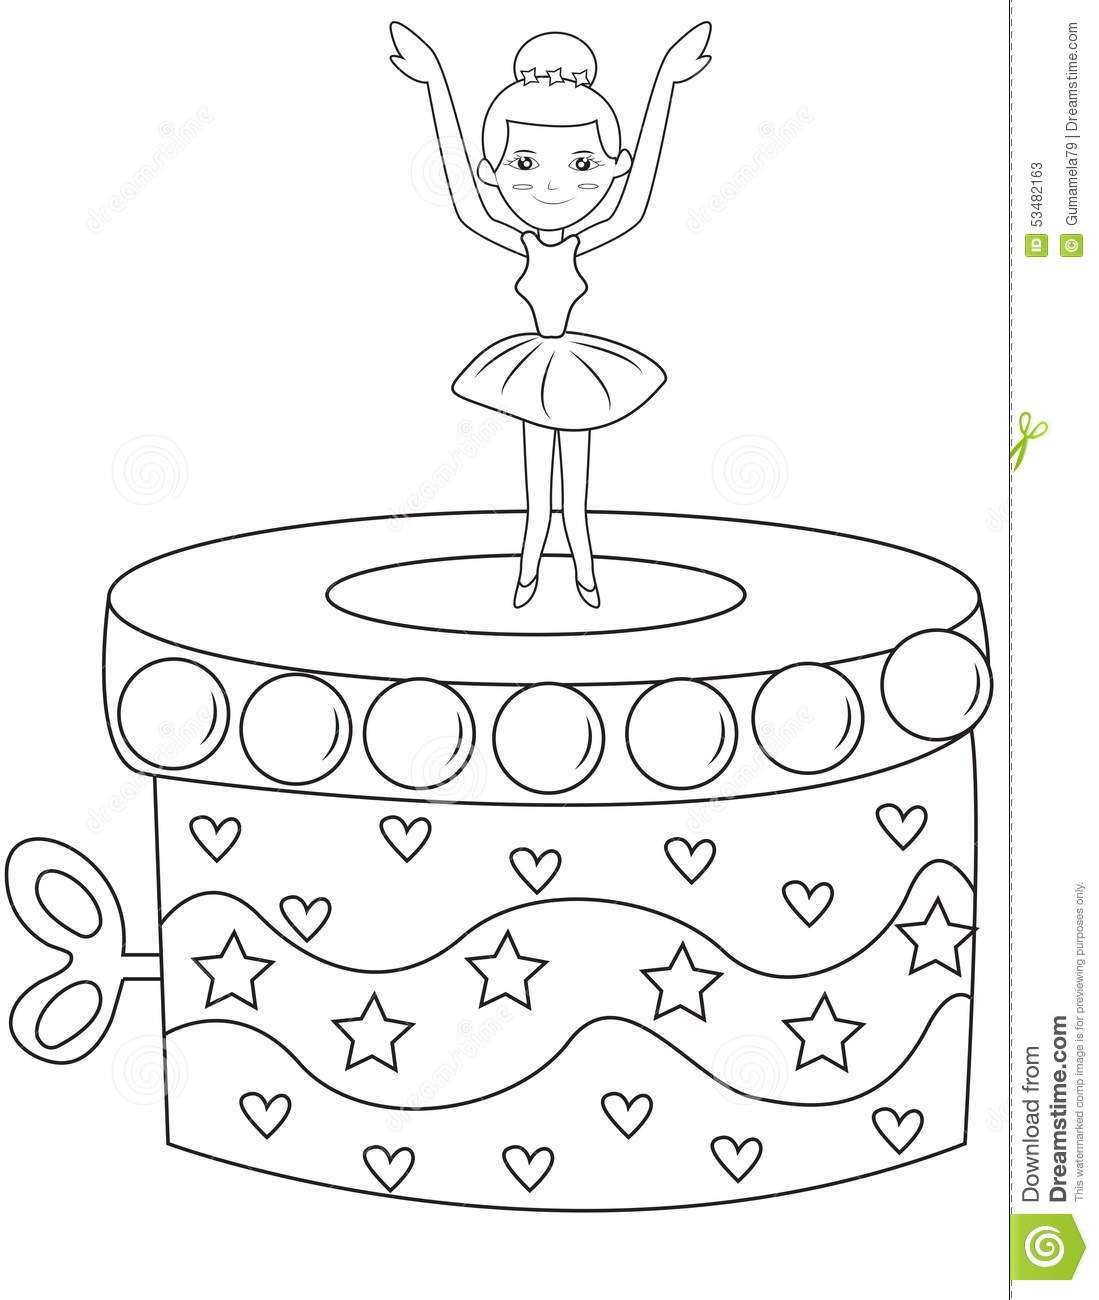 Ballerina Music Box Coloring Page Stock Illustration